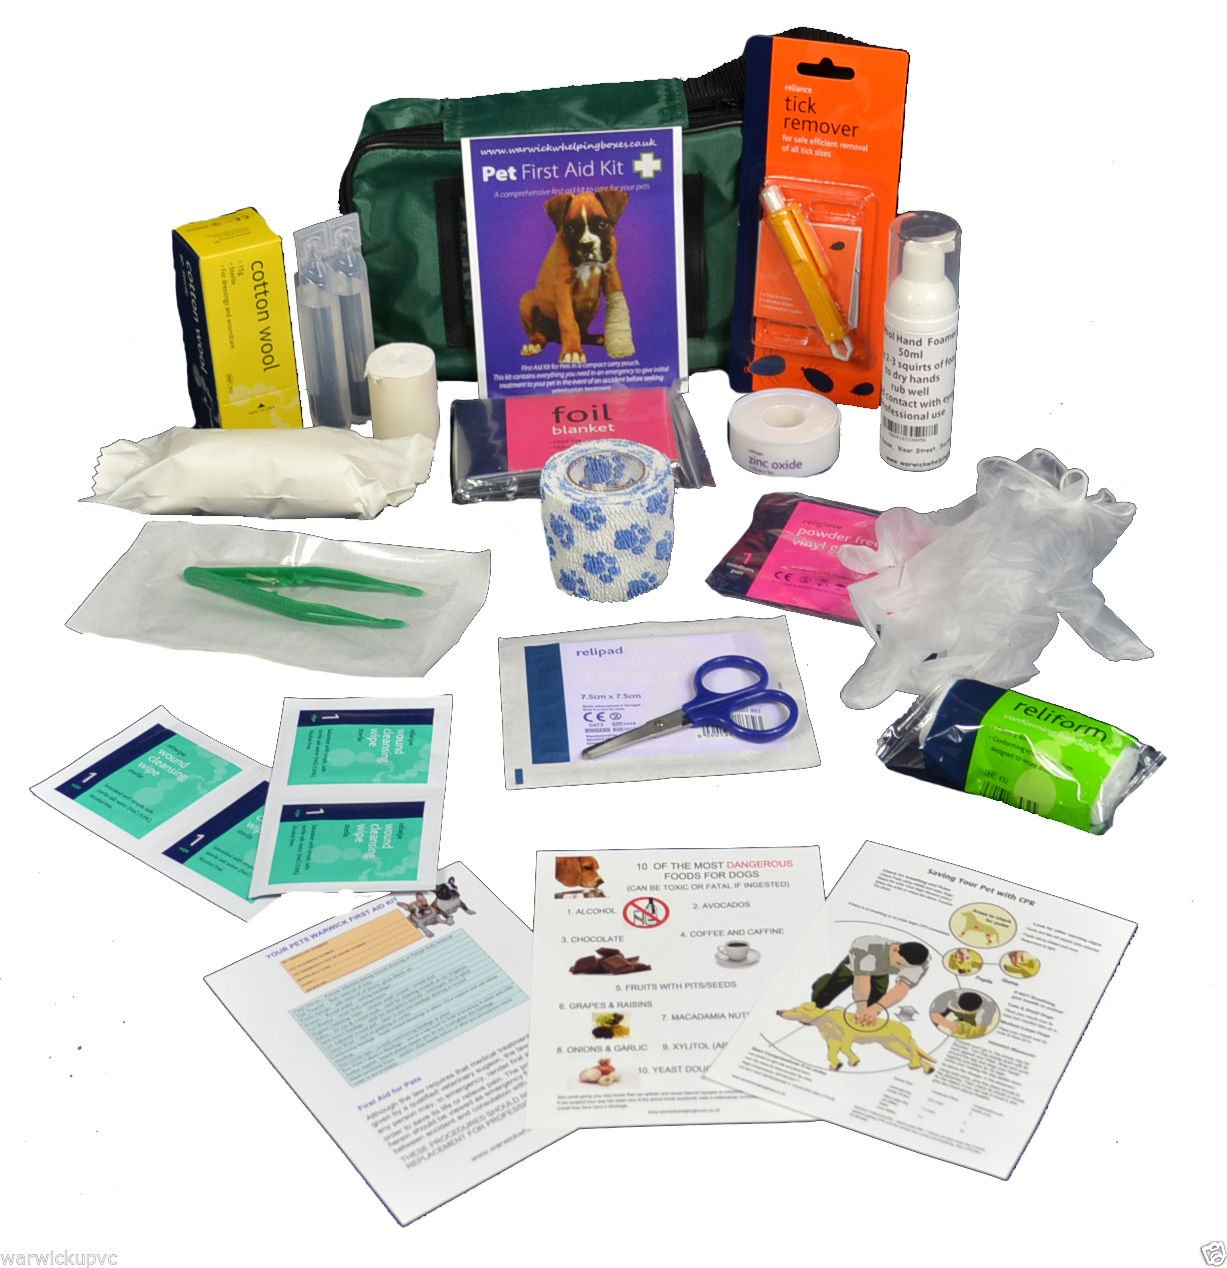 Warwick Whelping Boxes Pet First Aid Kit Comprehensive with paw print bandage and 50ml Hand sanitiser foamer CPR guide and Toxic foods leaflets included Warwick Whelping Boxes® Warwick Pet First Aid Kit Comprehensive